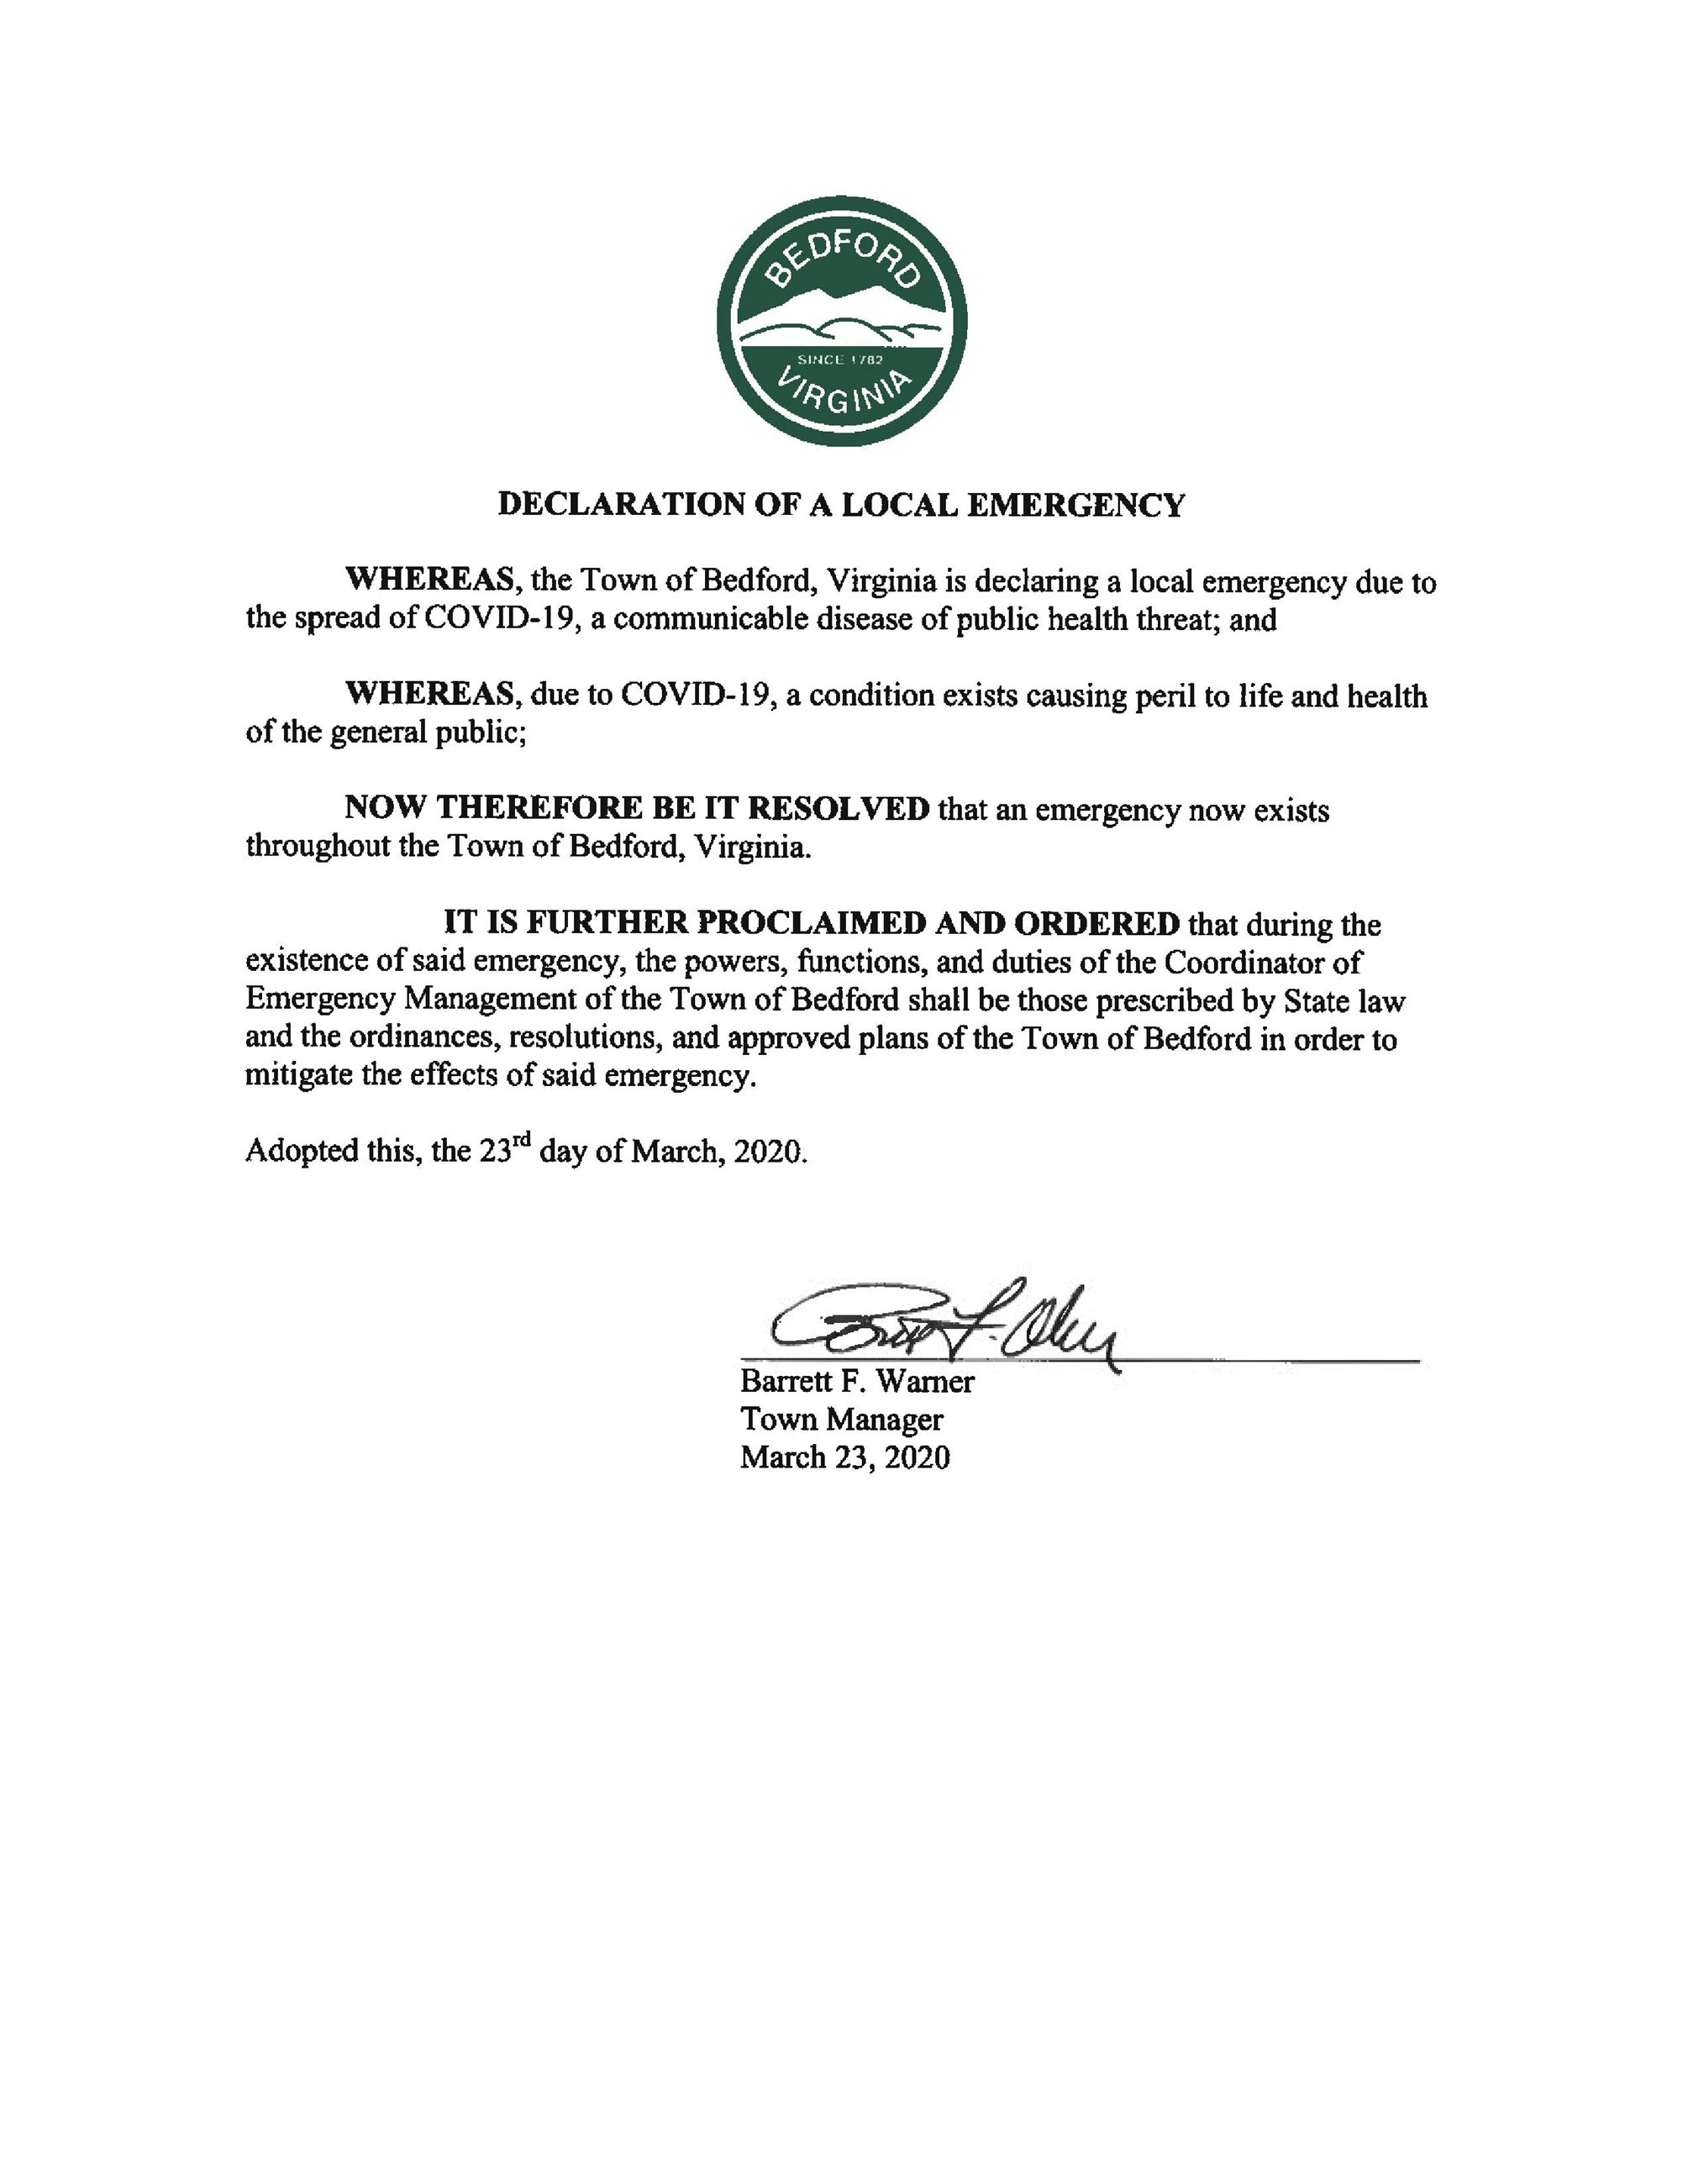 Local Emergency Declaration 032320